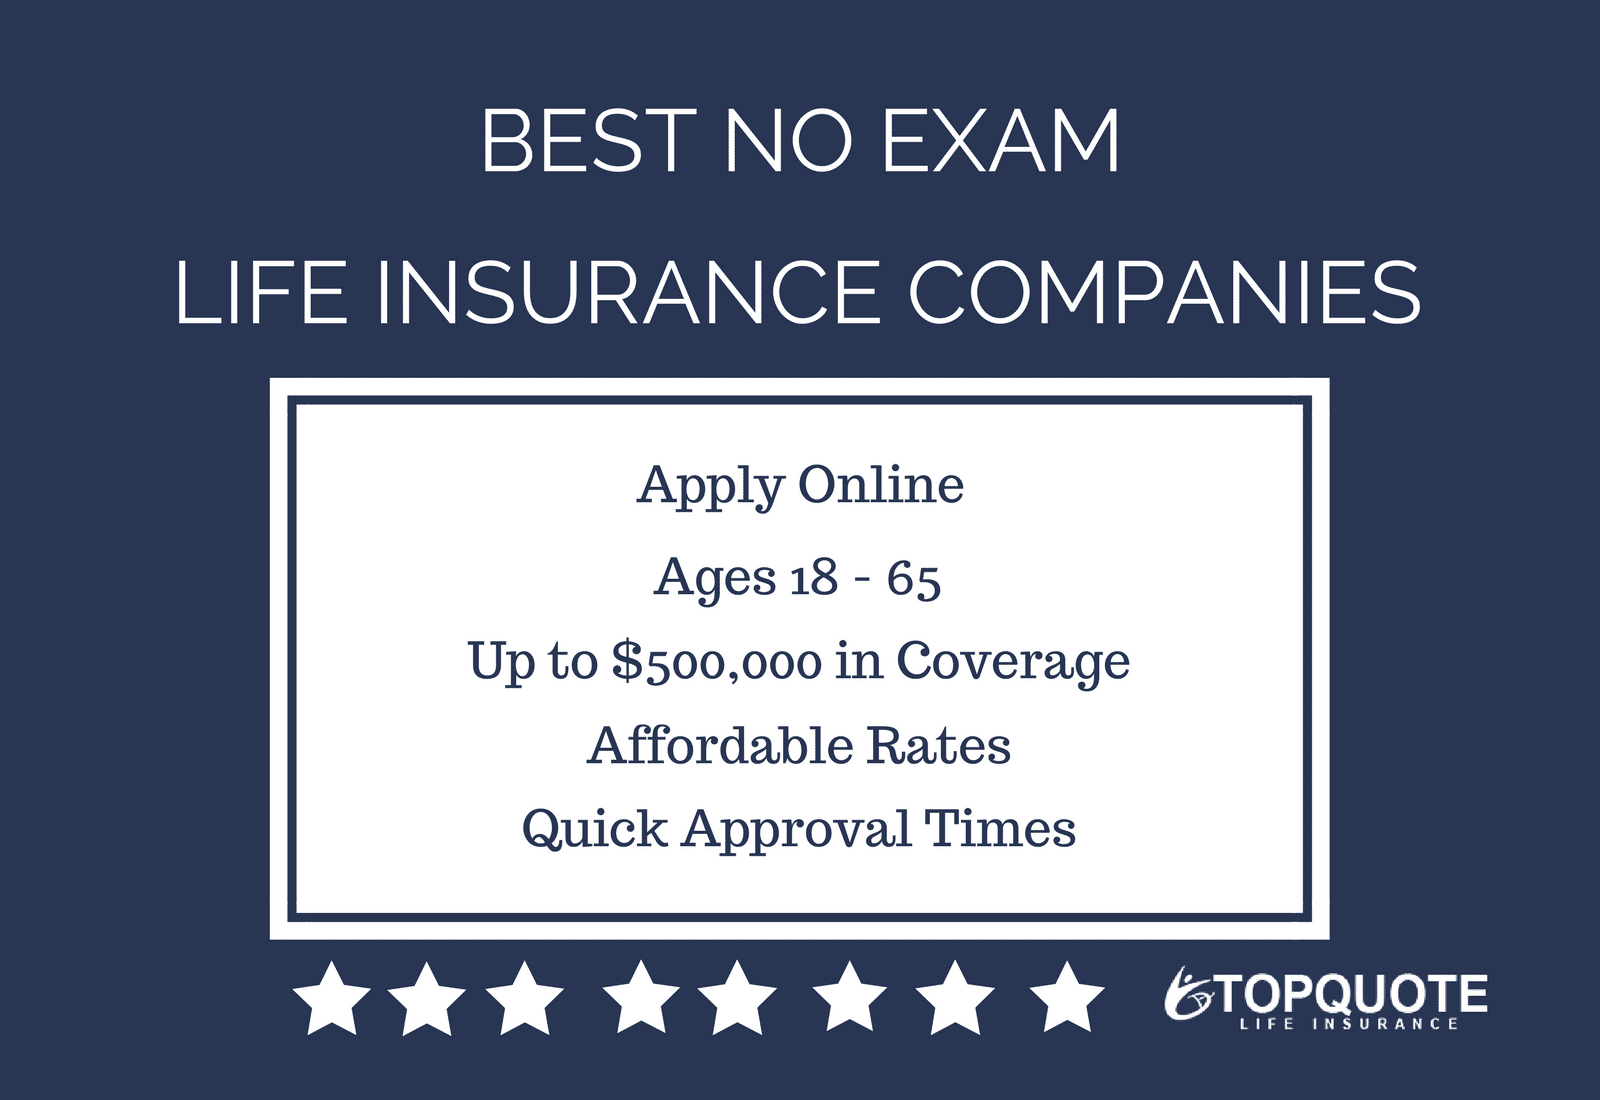 Life Insurance Quote Alluring Best No Exam Life Insurance Companies  Life Insurance  Pinterest . Design Inspiration